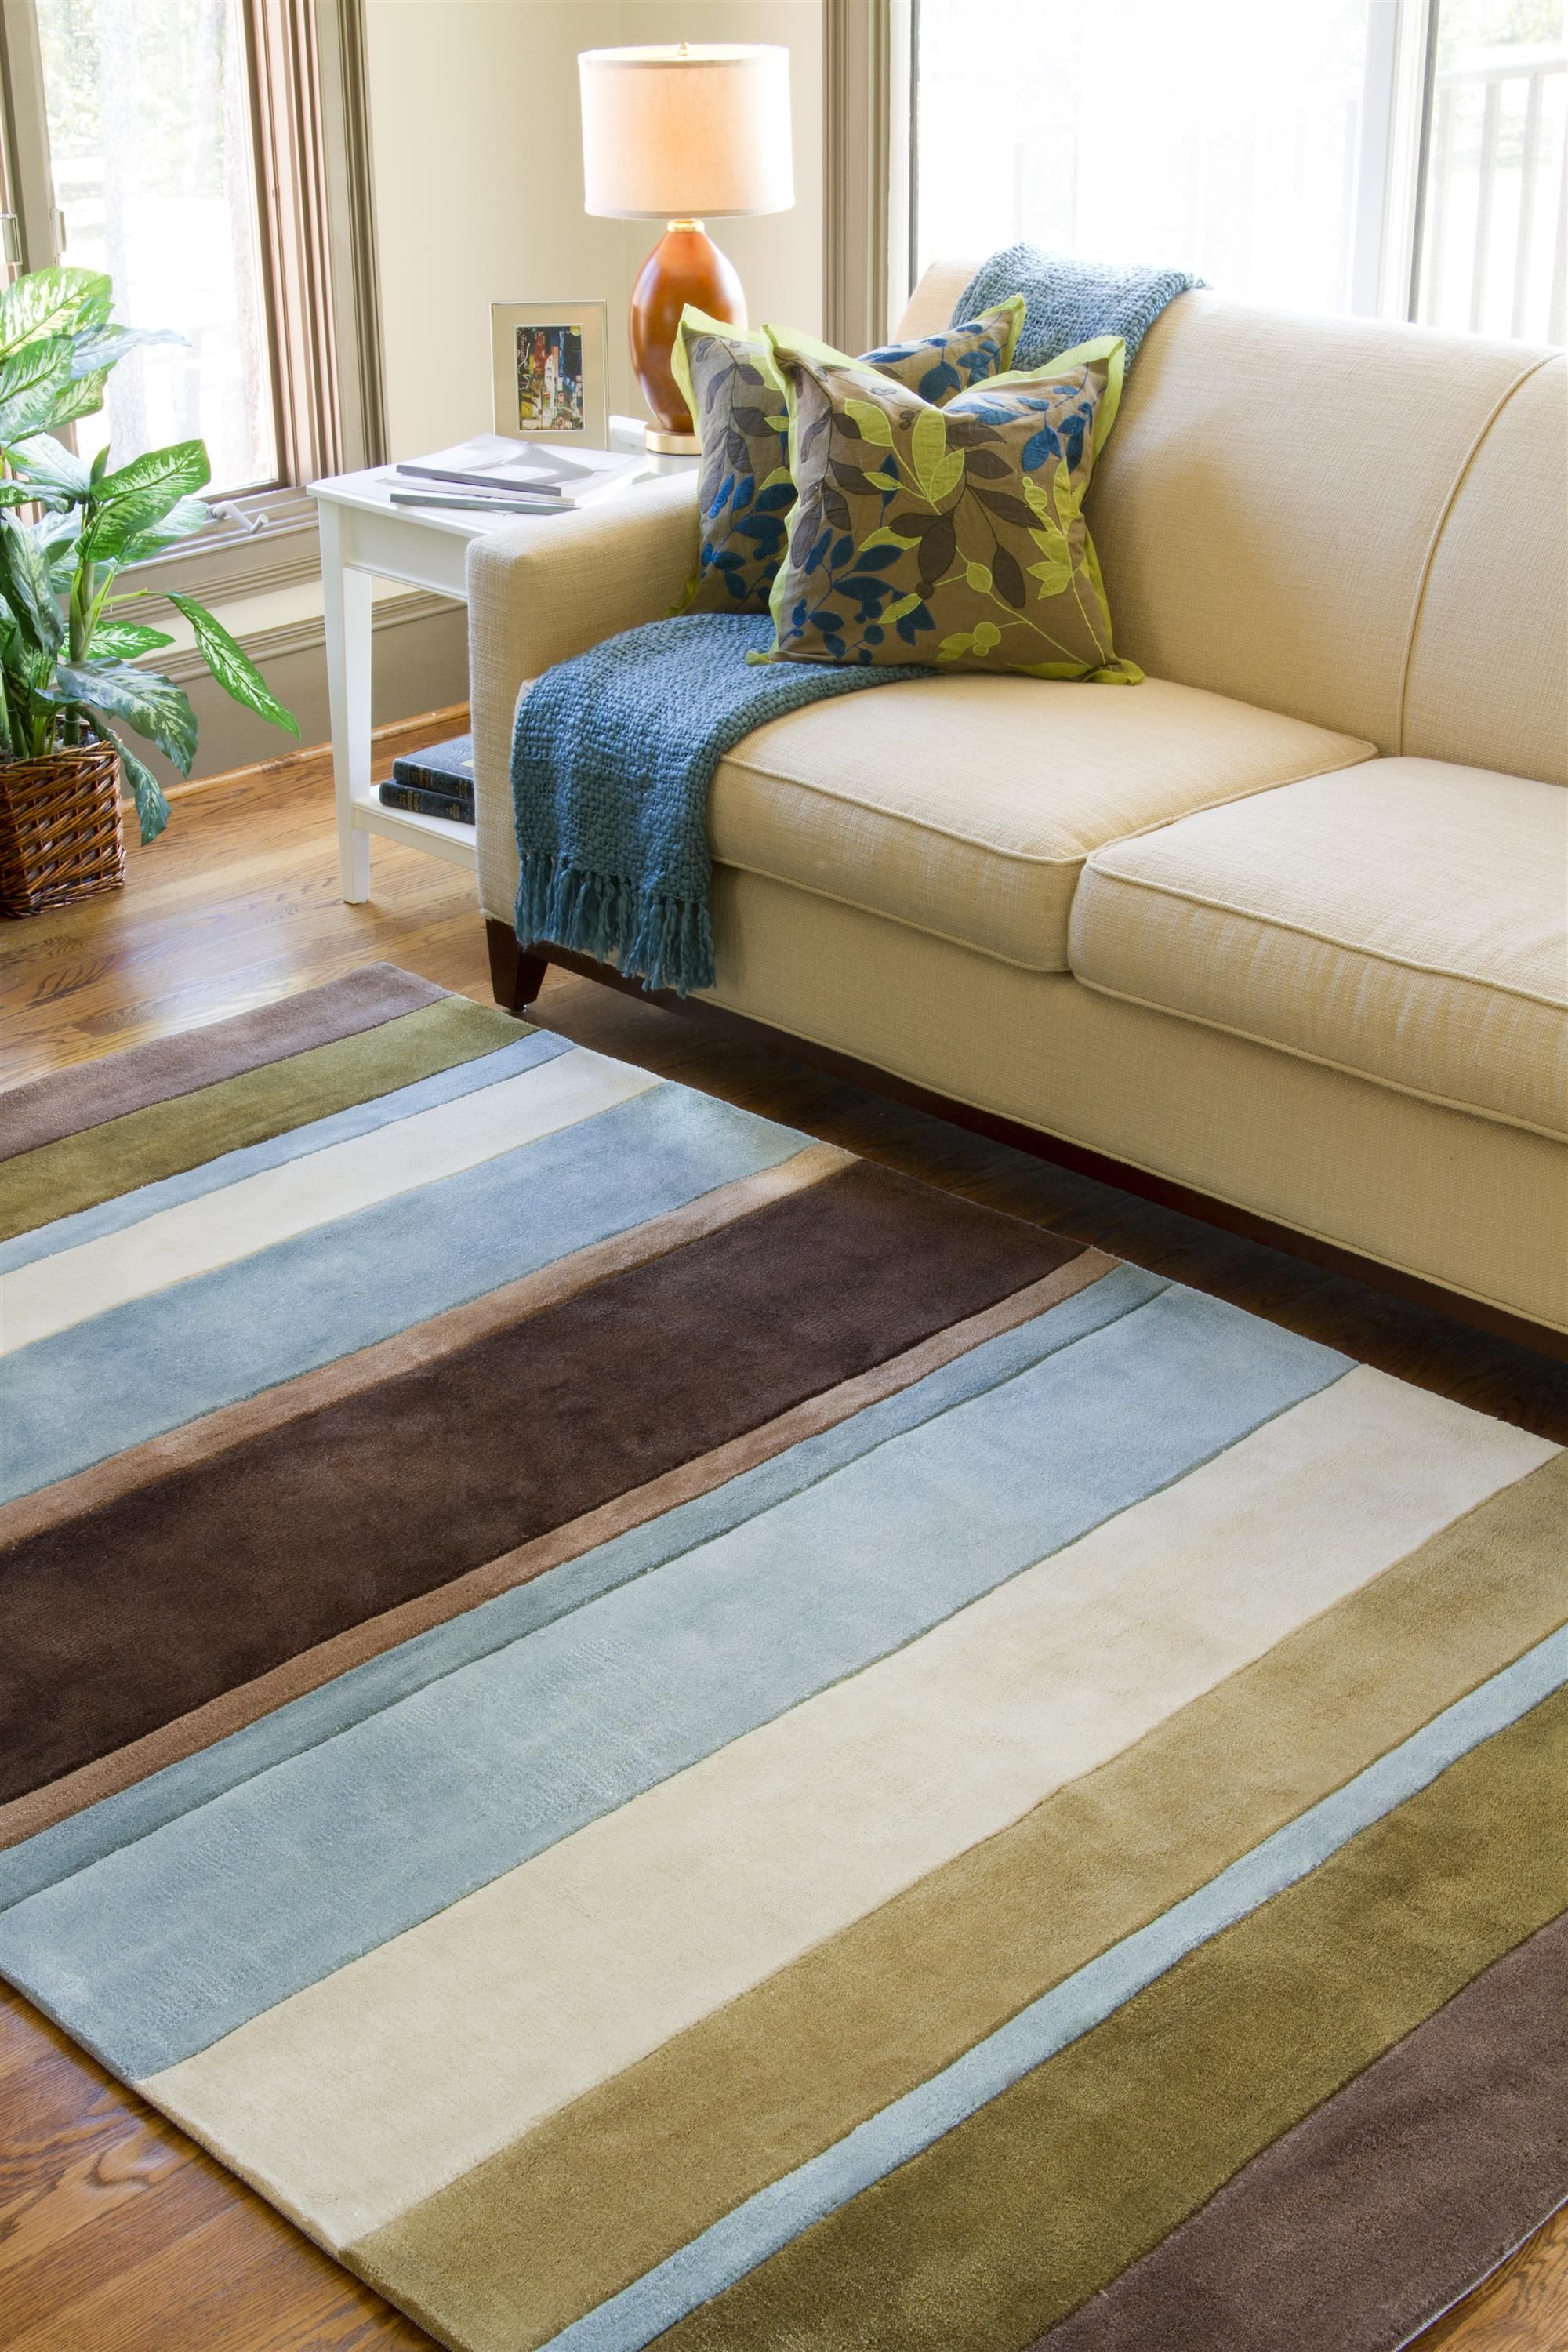 Striped Rug In Living Room Surya Cosmopolitan 9 X 13 Solids Tone On Tone Stripes Rug